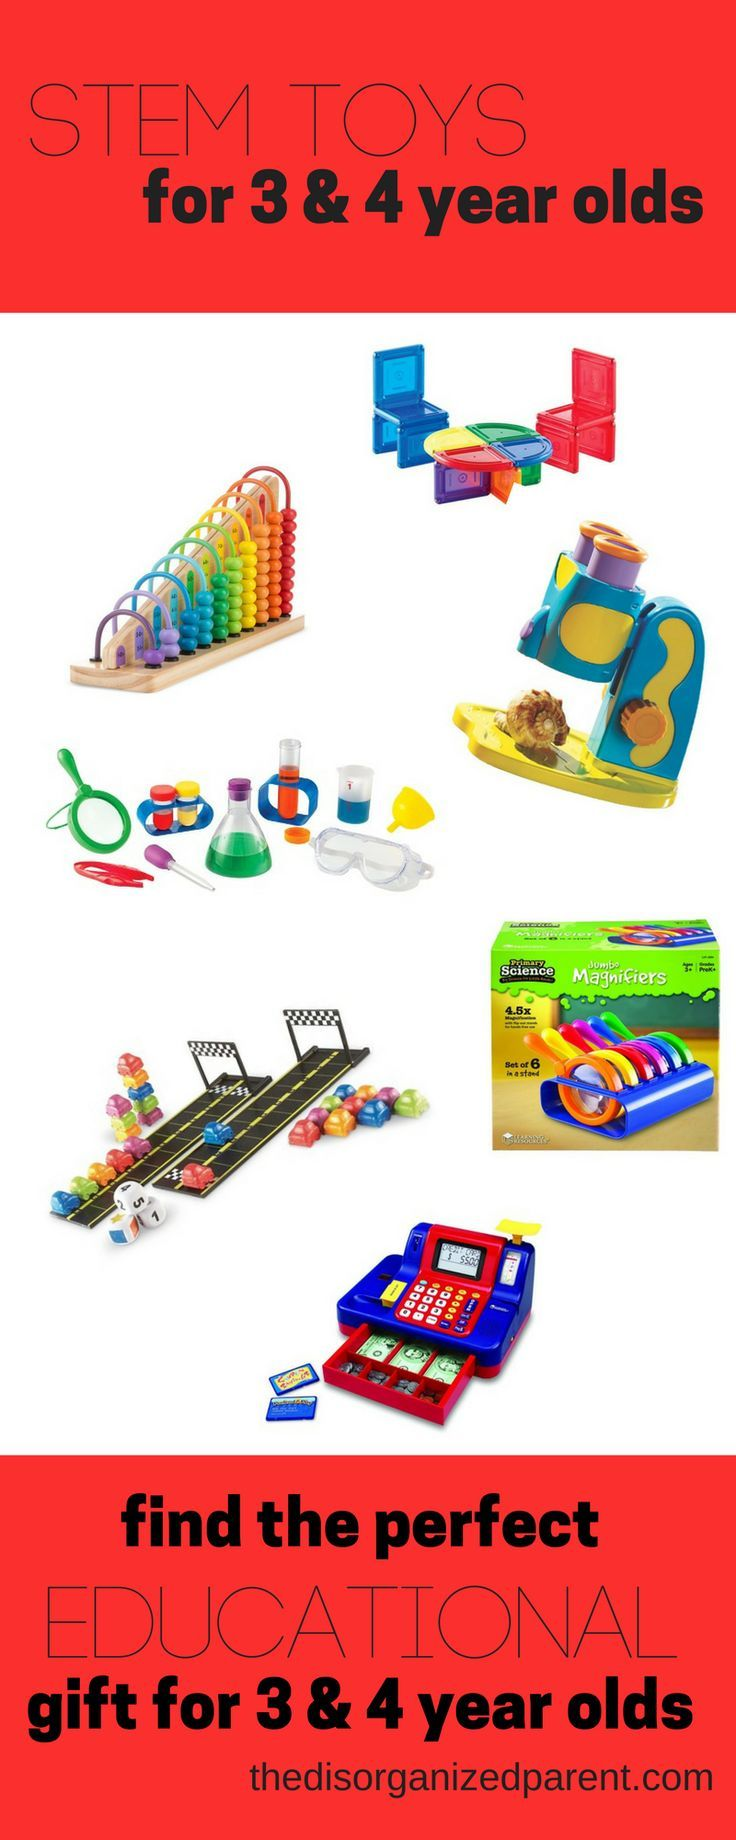 STEM Toys are perfect educational gift for kids! Here's a comprehensive list of toys to buy for 3-4 year olds that will make kids and parents both happy